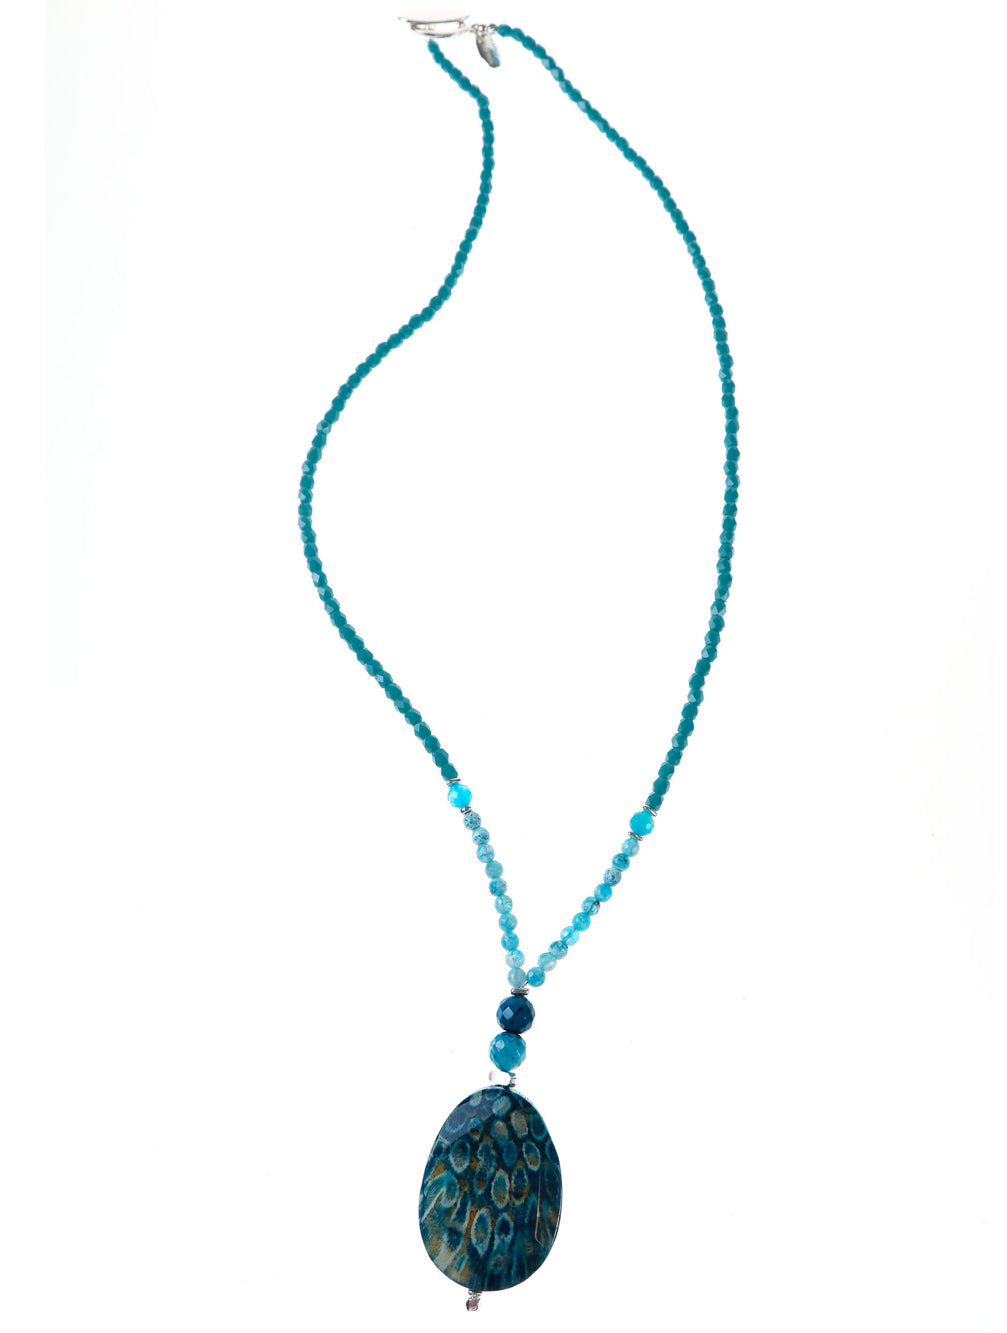 ST LUCIA STONE NECKLACE - Kaia London